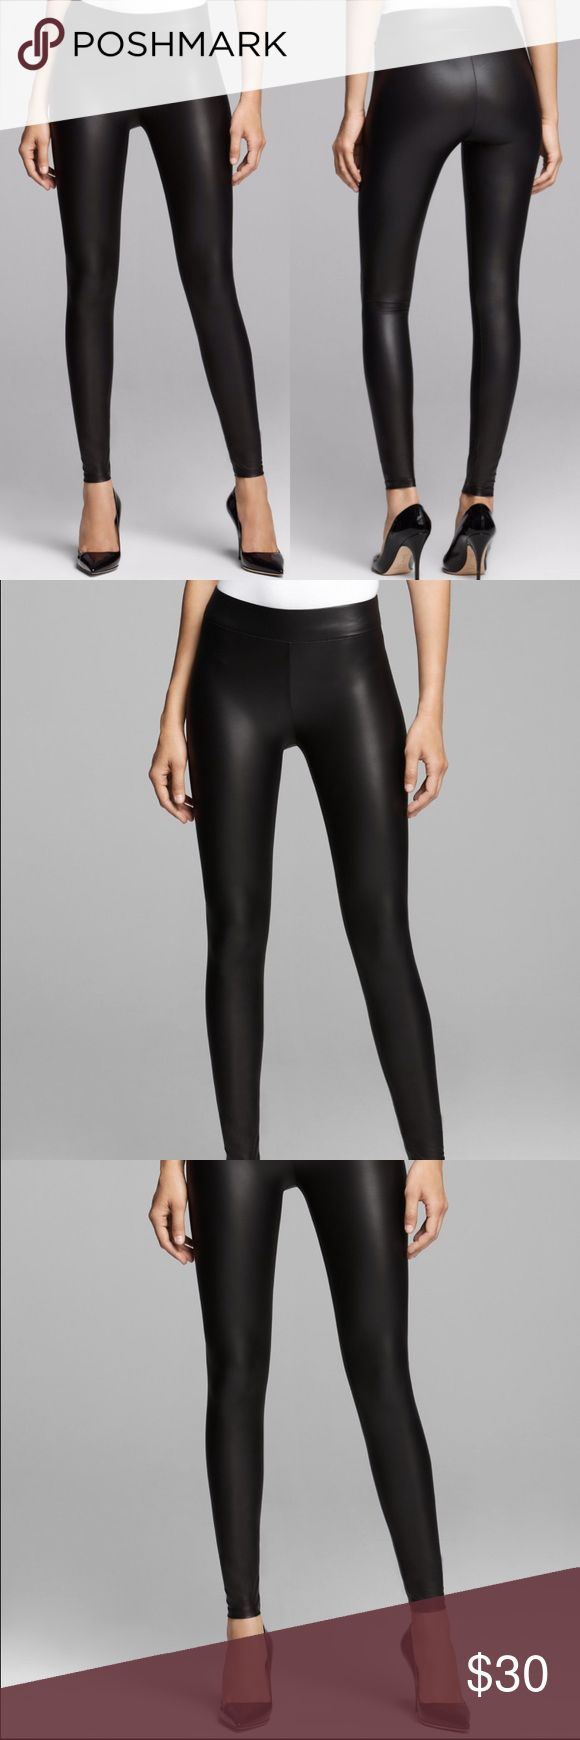 NWT Guess Matte Wet Leggings, Jet Black These leggings are to die for! I am in love with these leggings but sadly they were too small for me (if anyone has a small or medium let me know)!   Instantly give any look a rocker edge with these smooth faux-leather leggings.  They stretch and love with you, and wide elastic waistband provides a flattering fit. Guess Pants Leggings